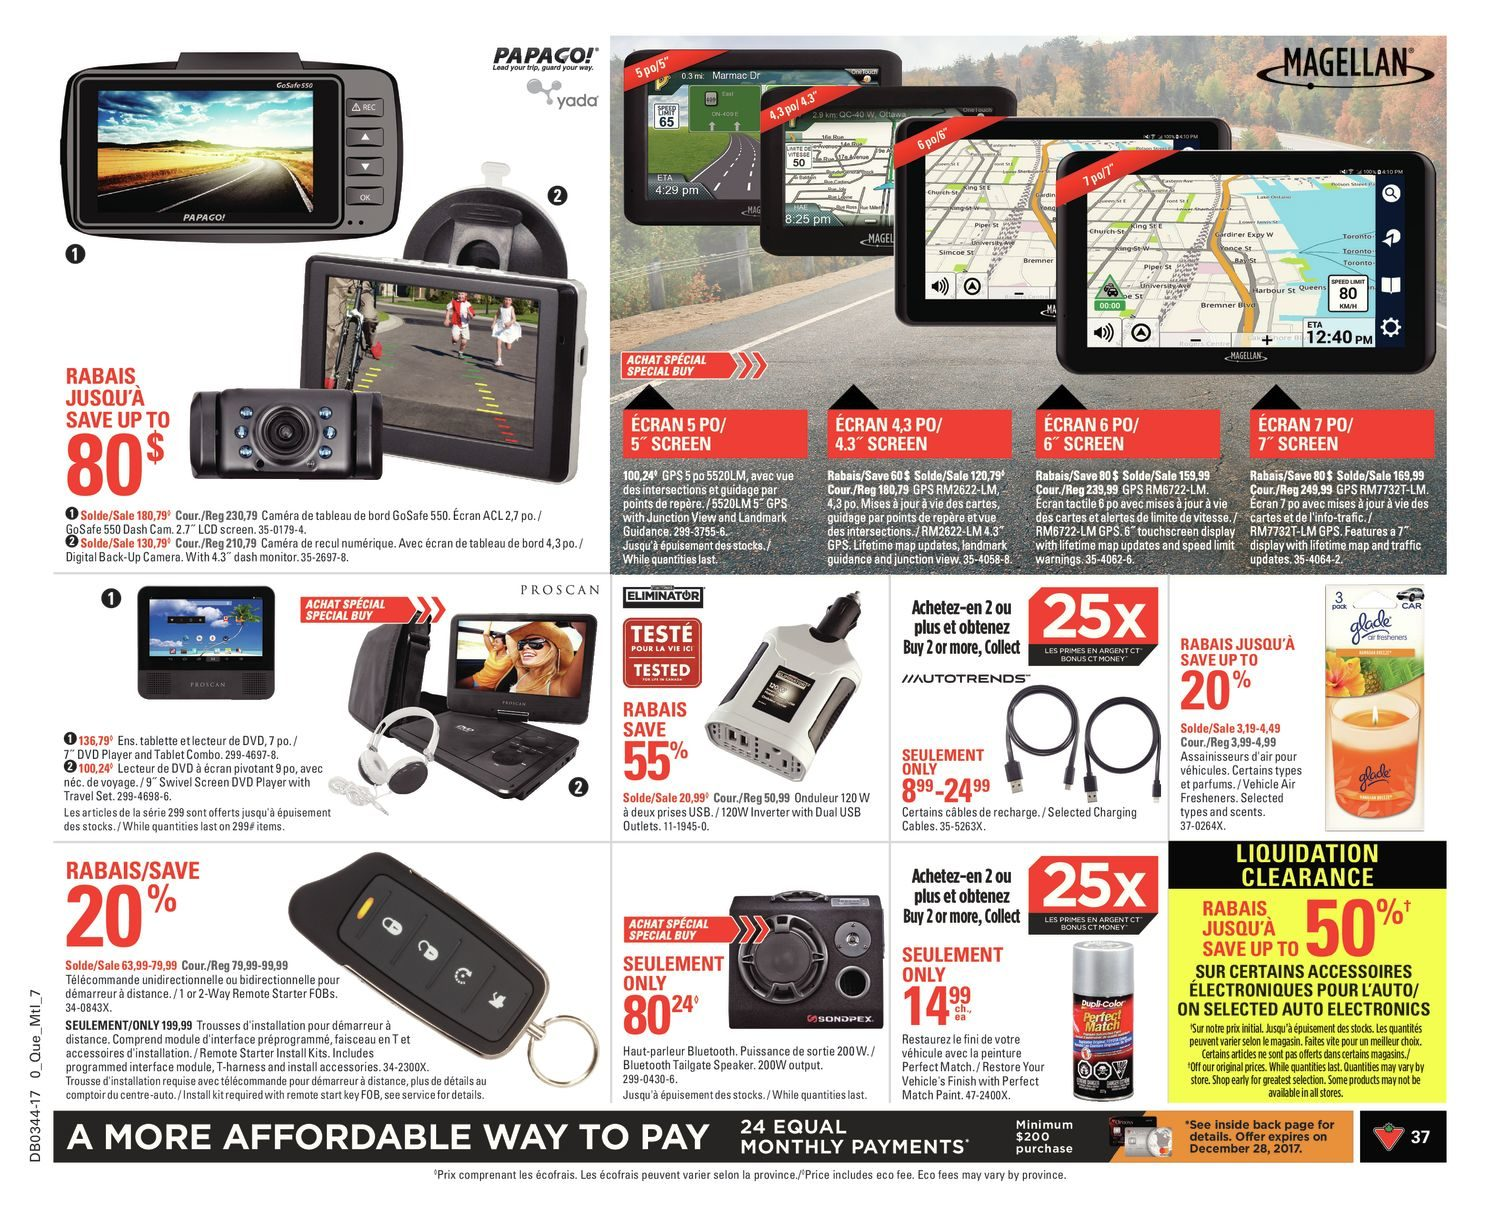 Canadian Tire Weekly Flyer All About Fall Oct 26 Nov Barrel Swivel With Interlock Snap Pioneer No 5 7 1